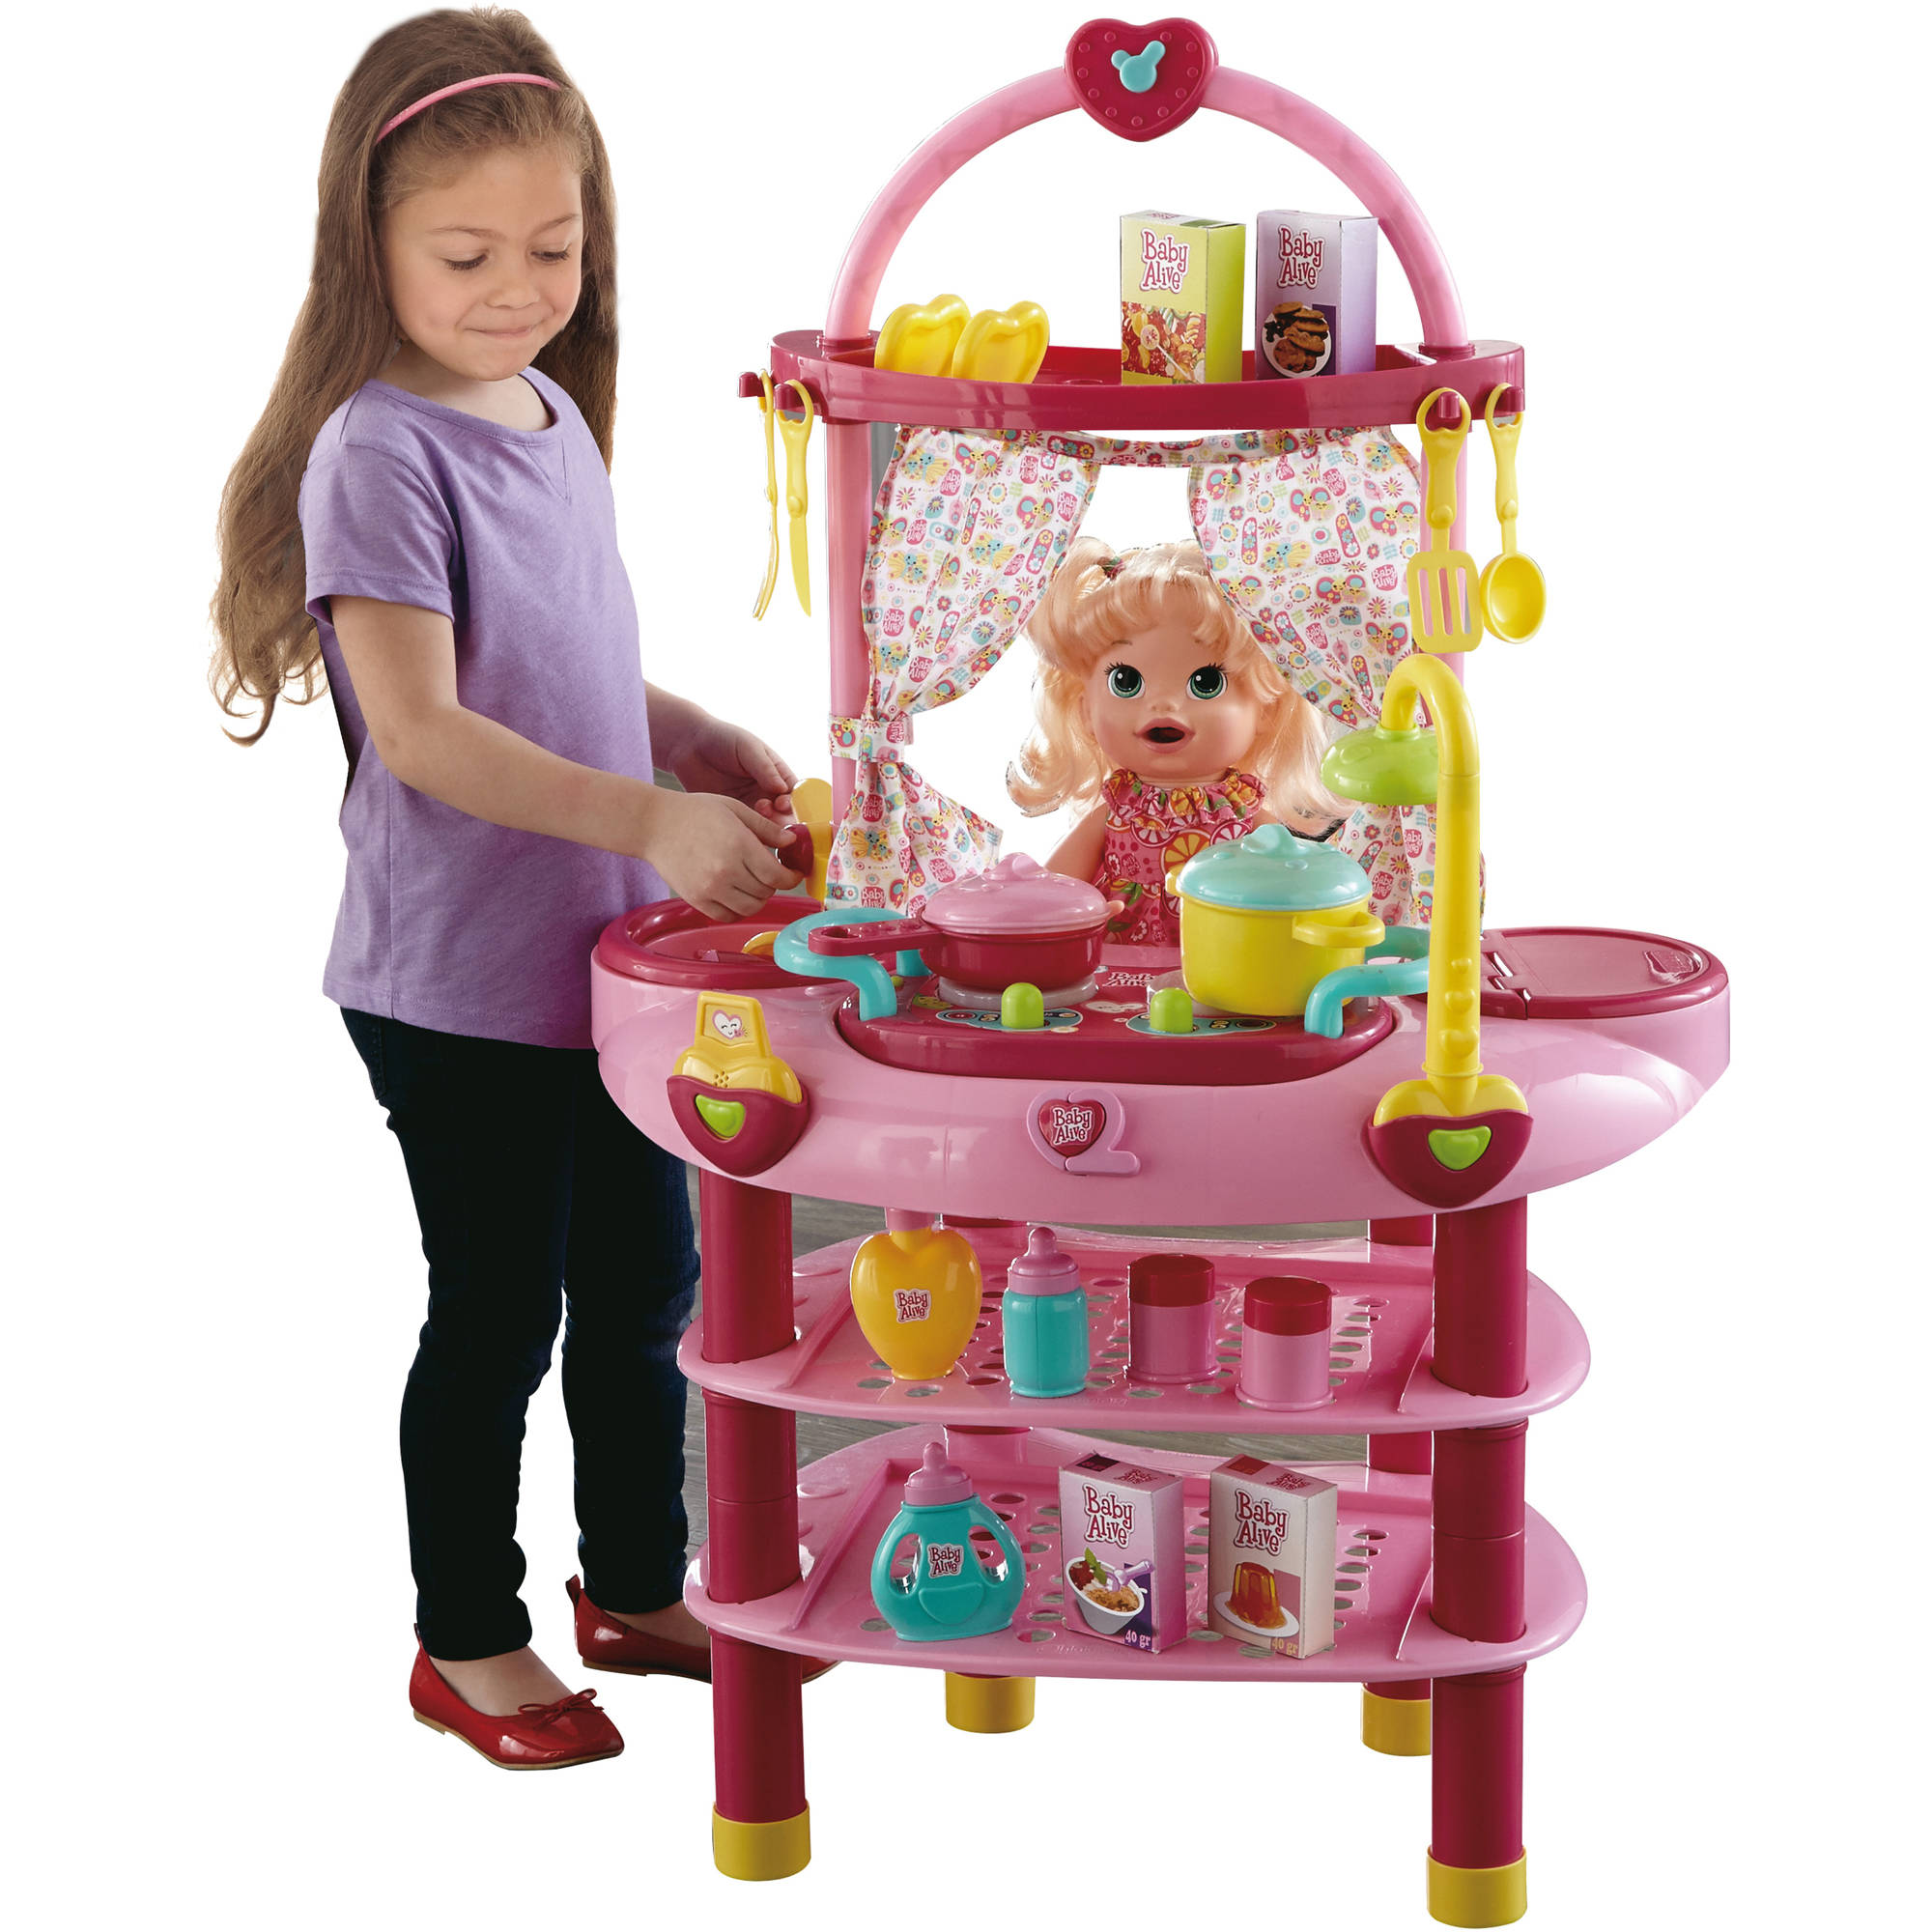 Accessories For Baby Alive - Best Accessories 2017